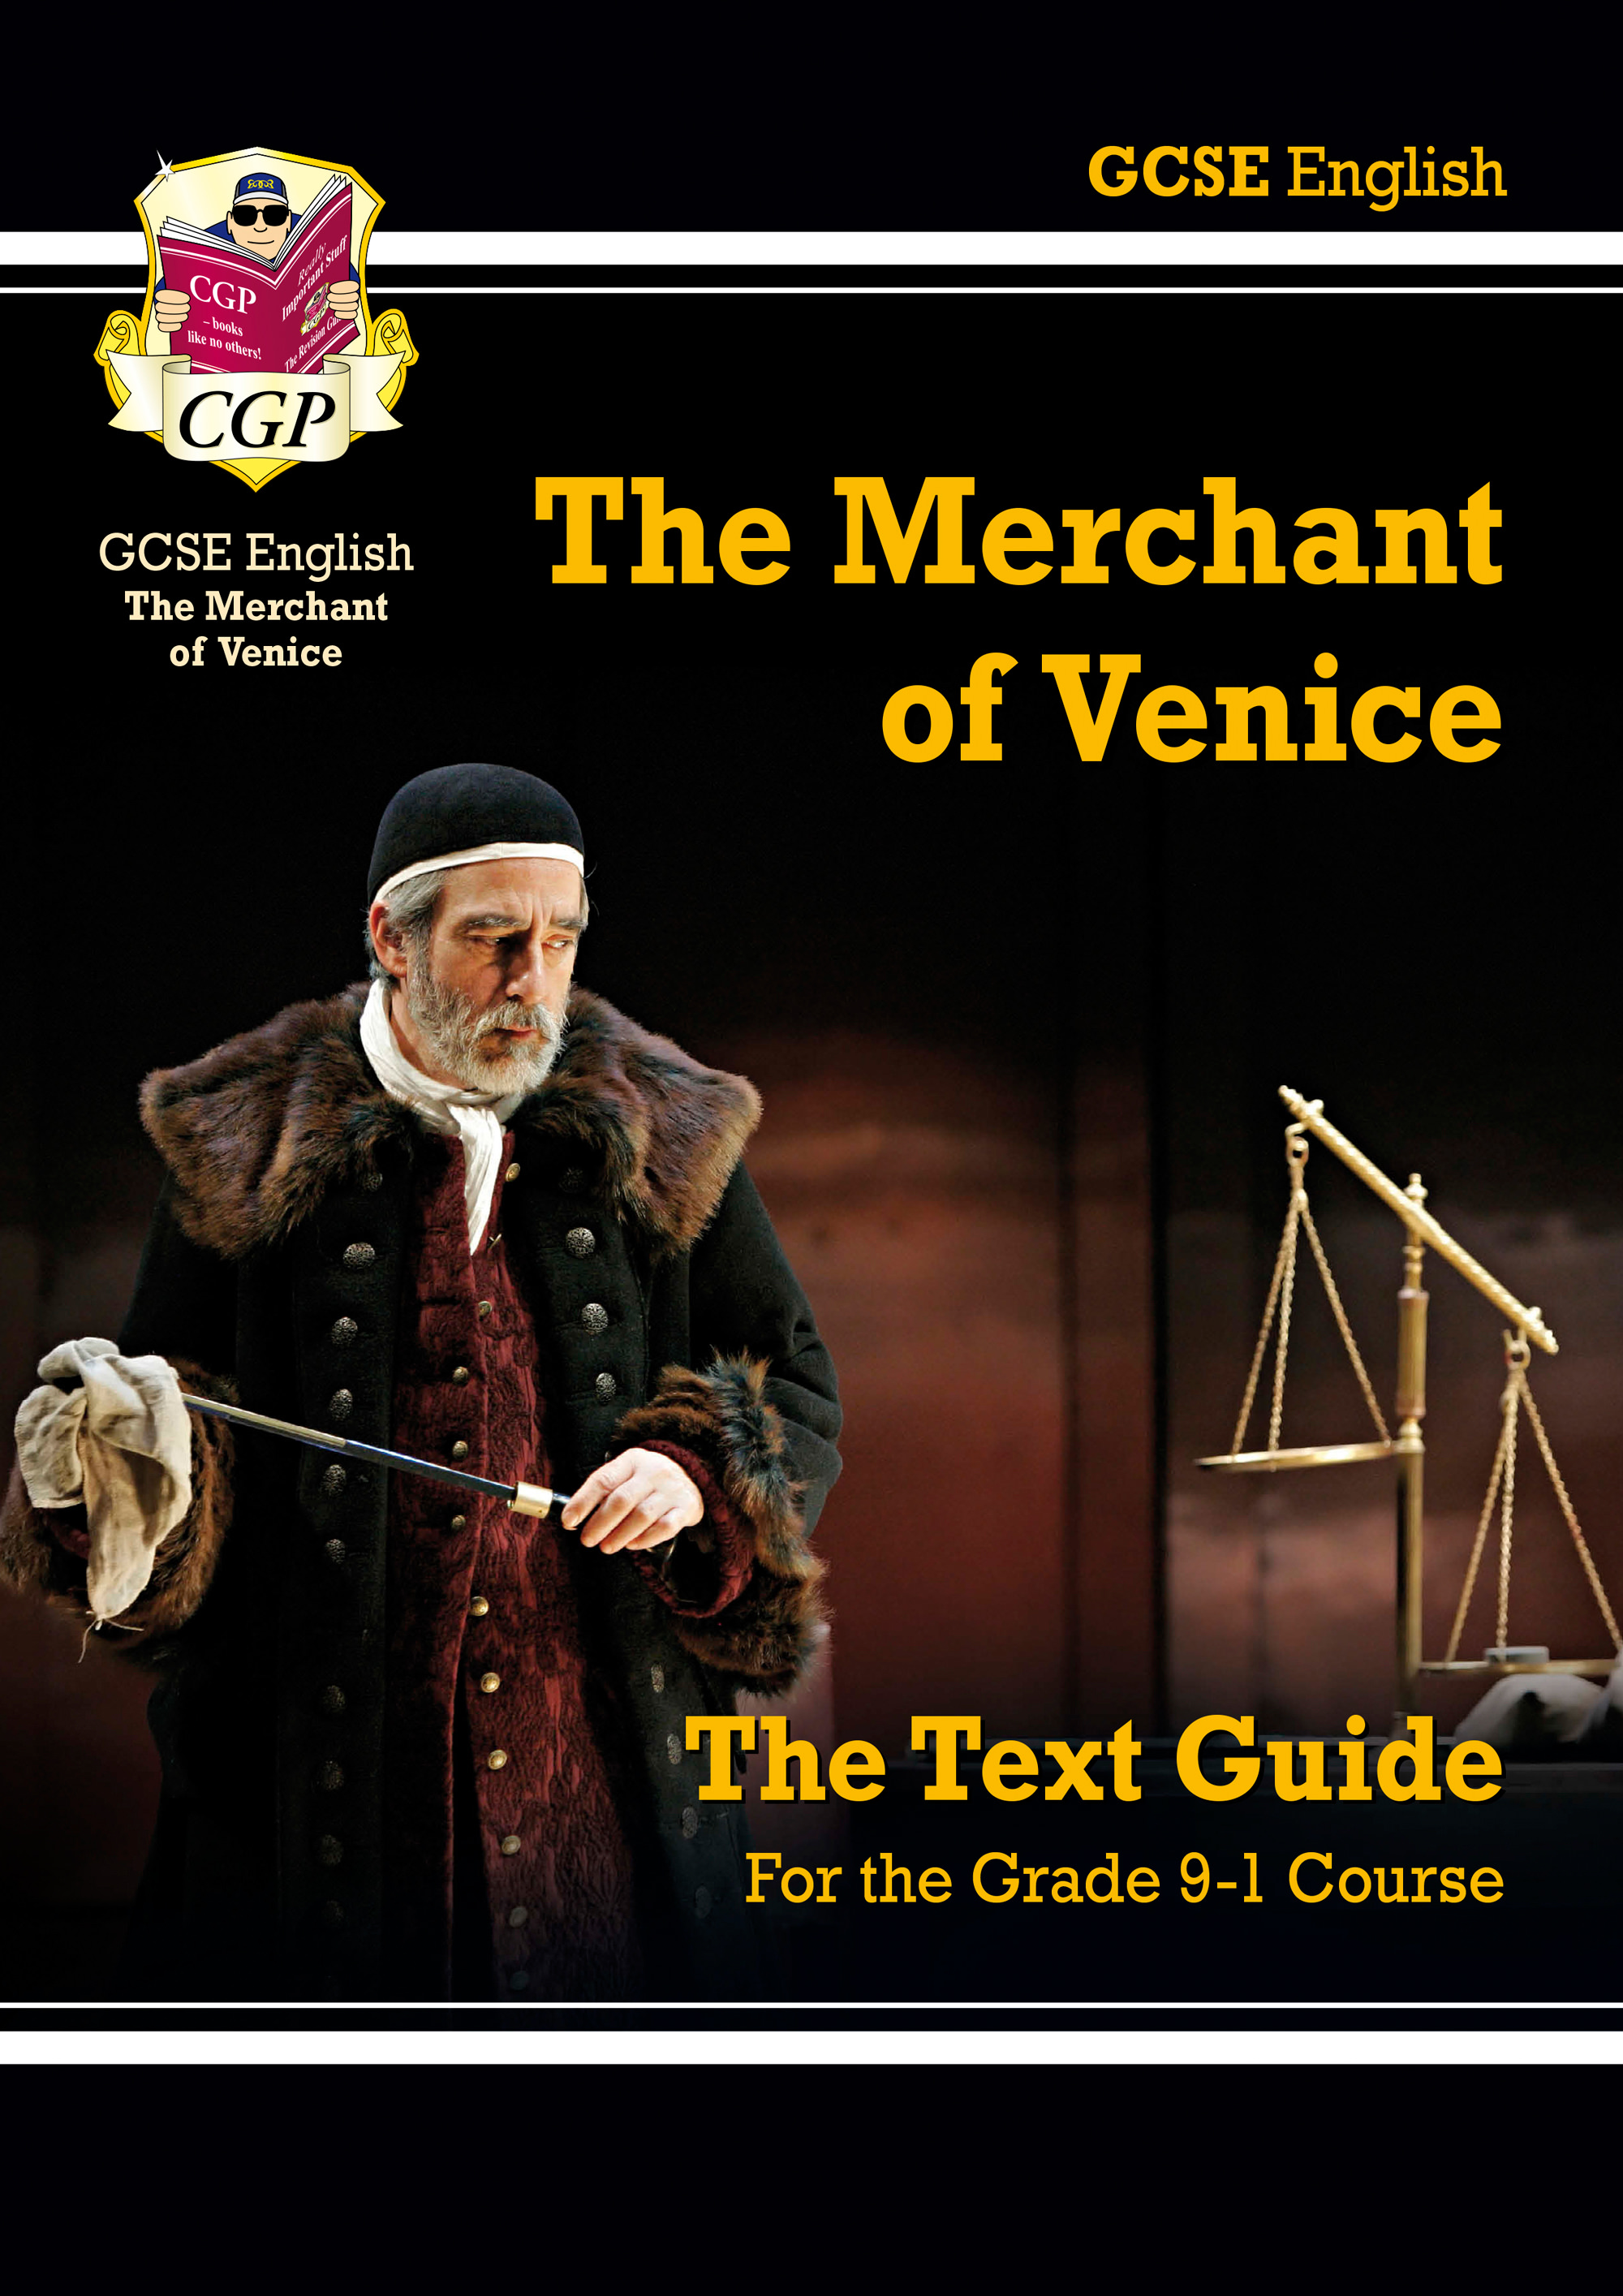 ETMV41DK - Grade 9-1 GCSE English Shakespeare Text Guide - The Merchant of Venice